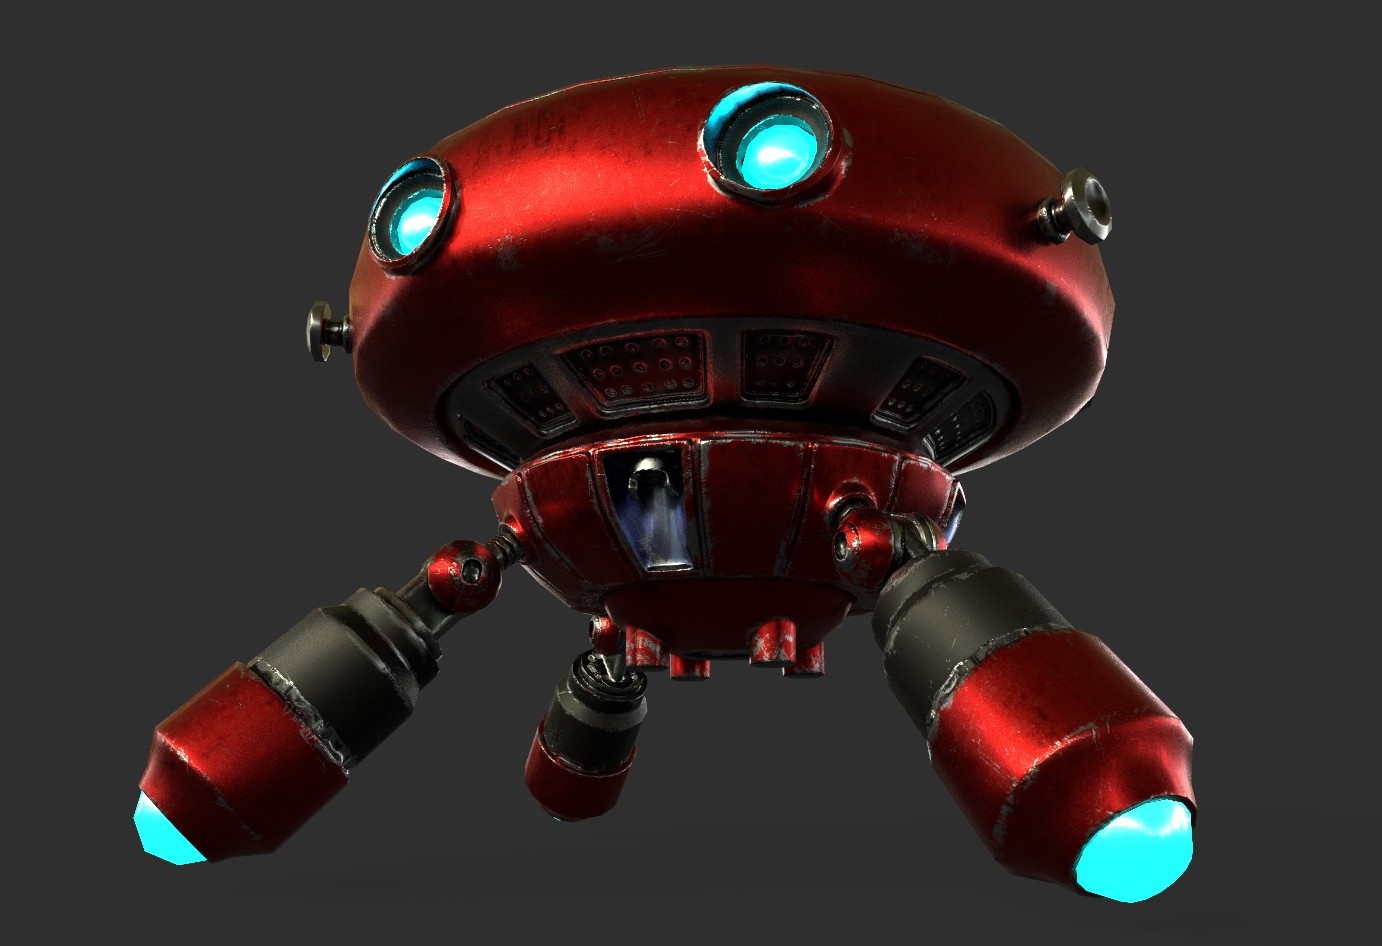 robot boc662 3d model 3ds max 3ds project fbx obj 293432